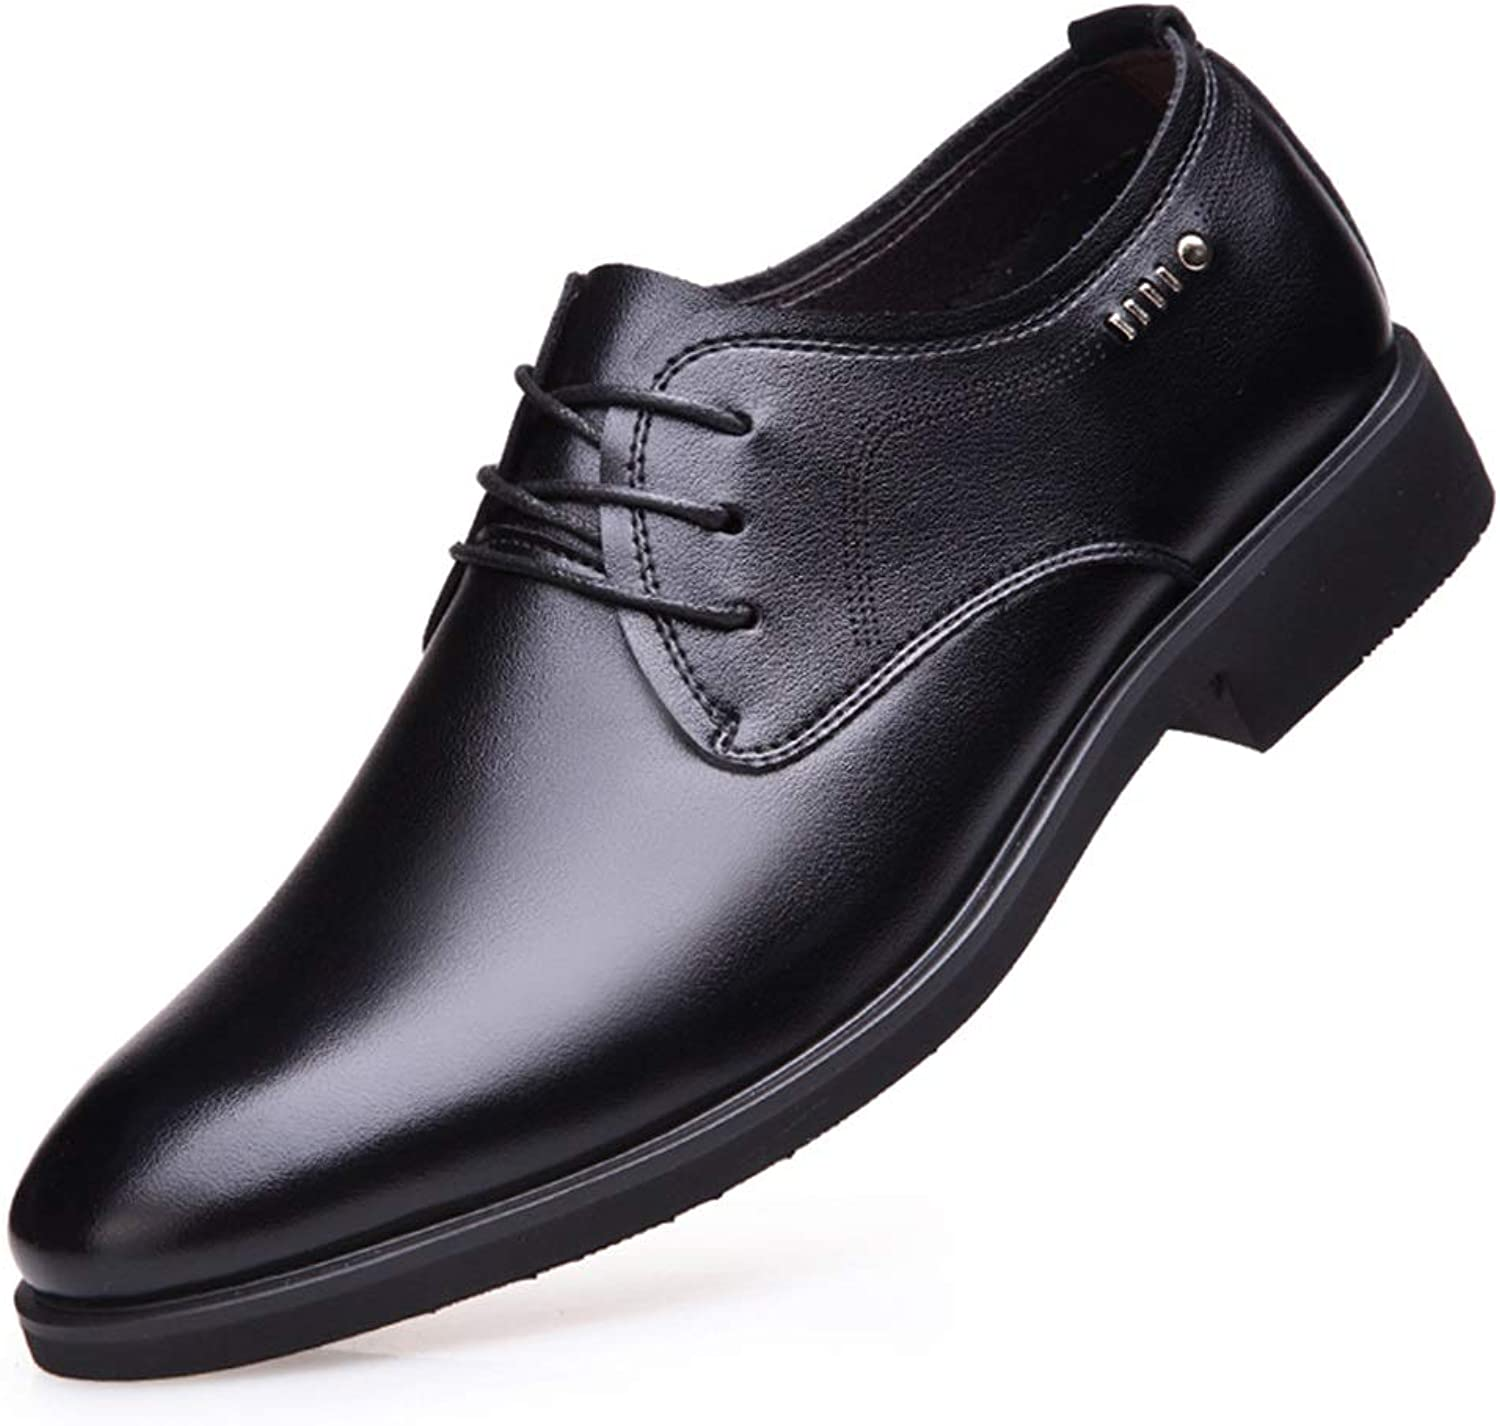 Ino Durable and Fashion Oxford shoes for Men Formal shoes Lace Up Style Microfiber Leather Simple Pure color Business Style